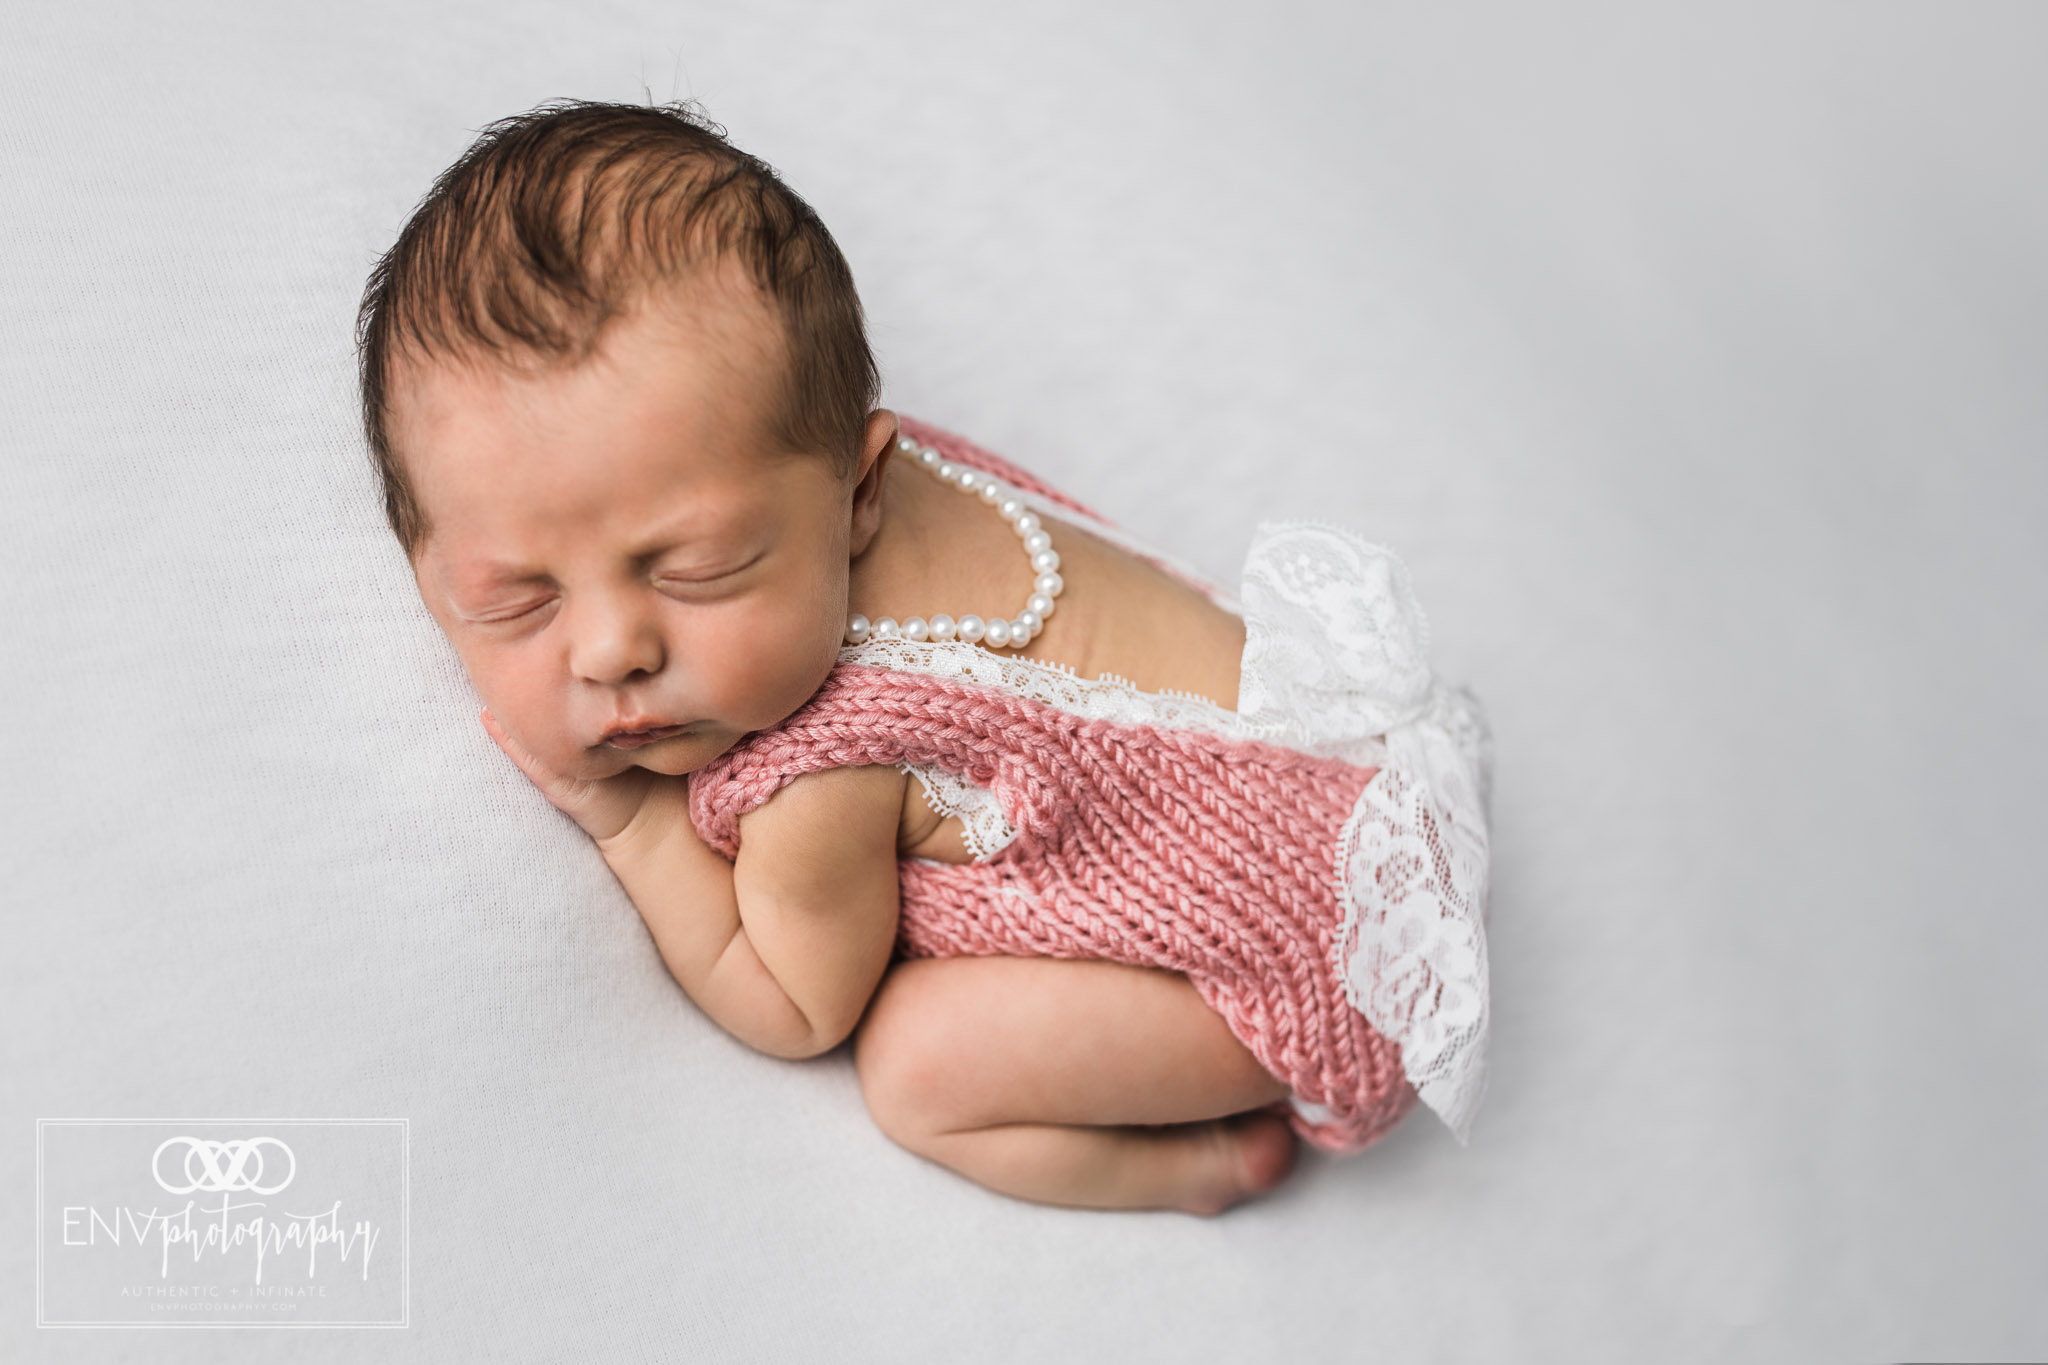 columbus ohio mount vernon ohio newborn photographer (4).jpg